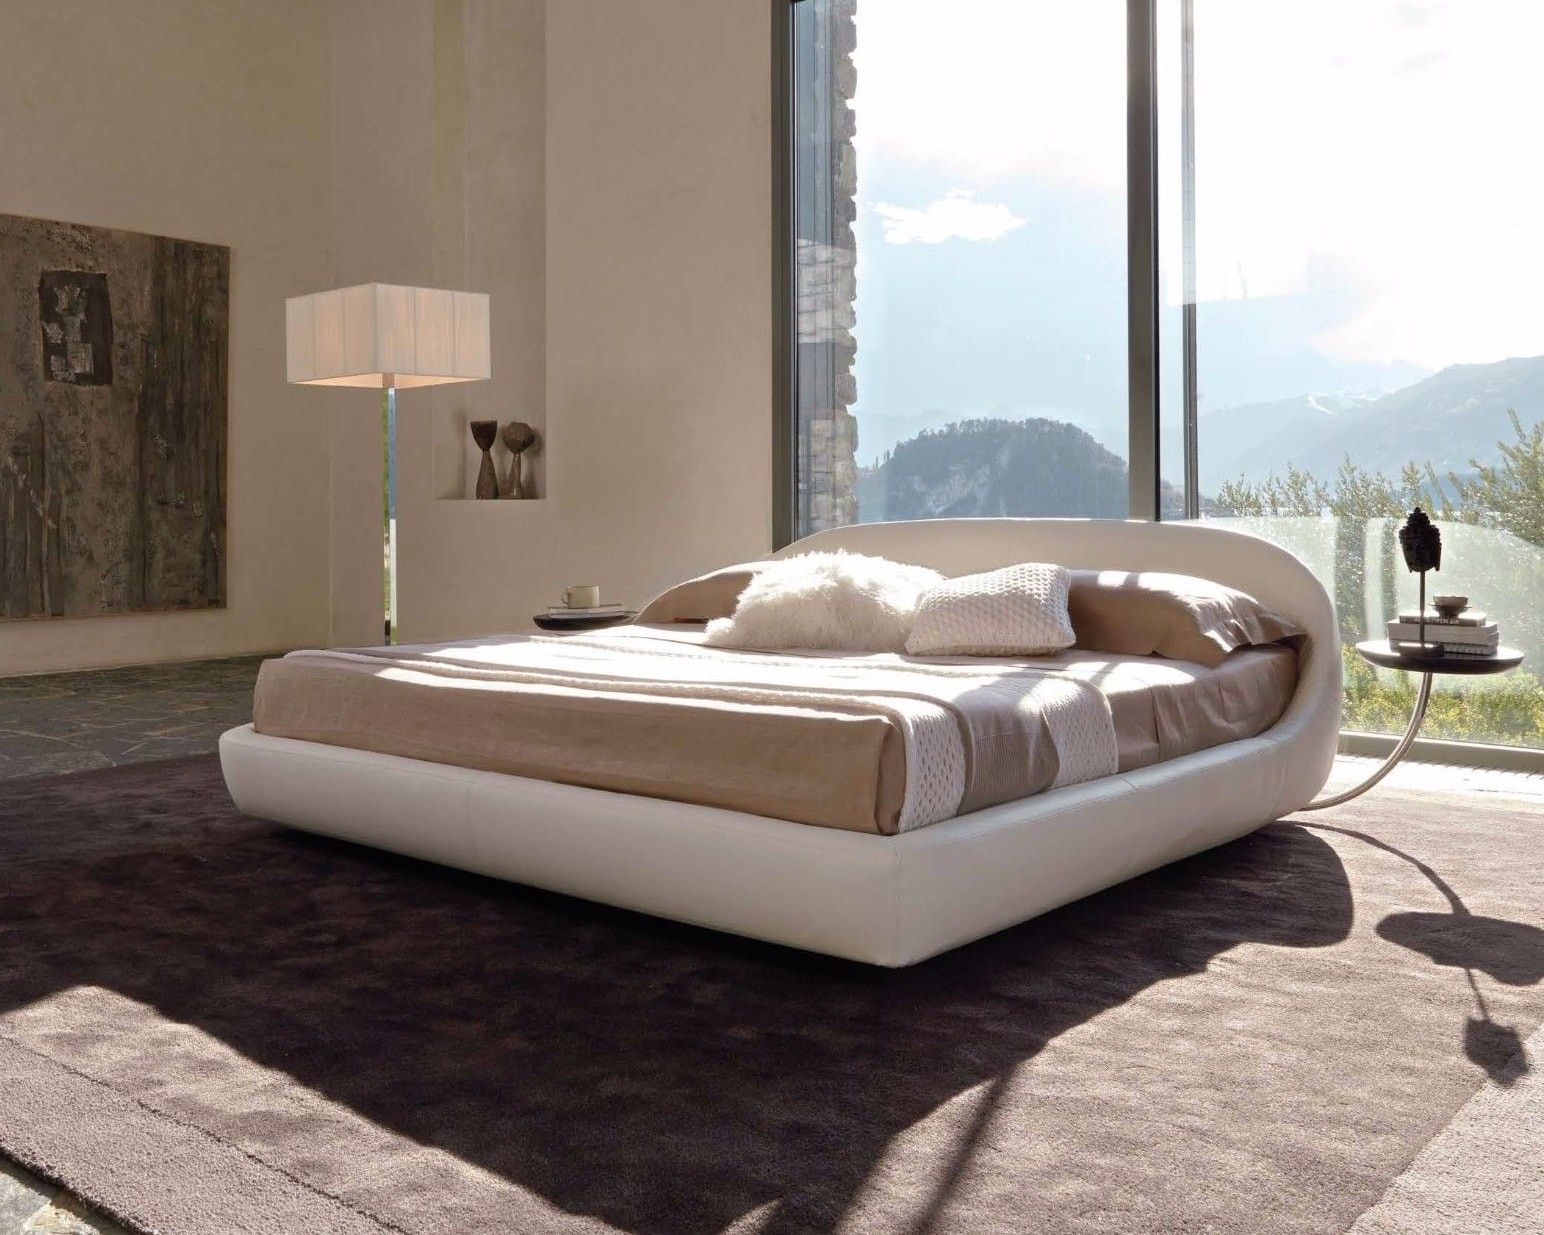 Lacoon Bed | Bedroom Furniture In Malaysia - Linds ...